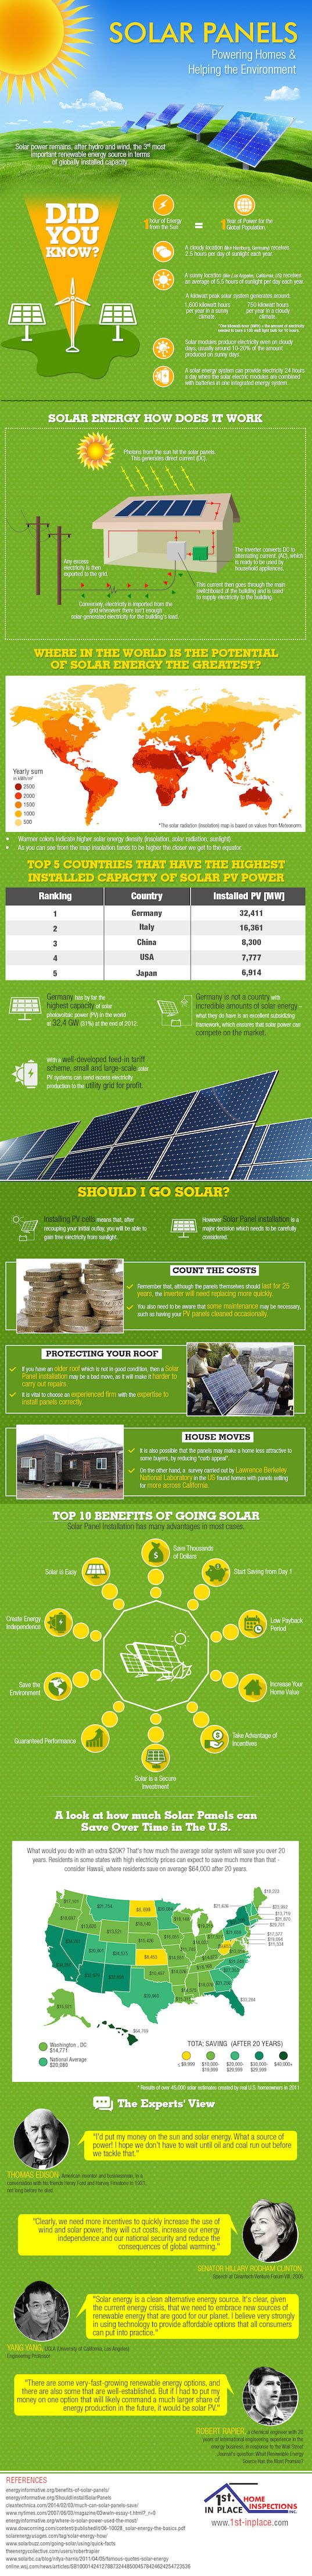 Infographic learn how solar panels work and the benefits Benefits of going solar